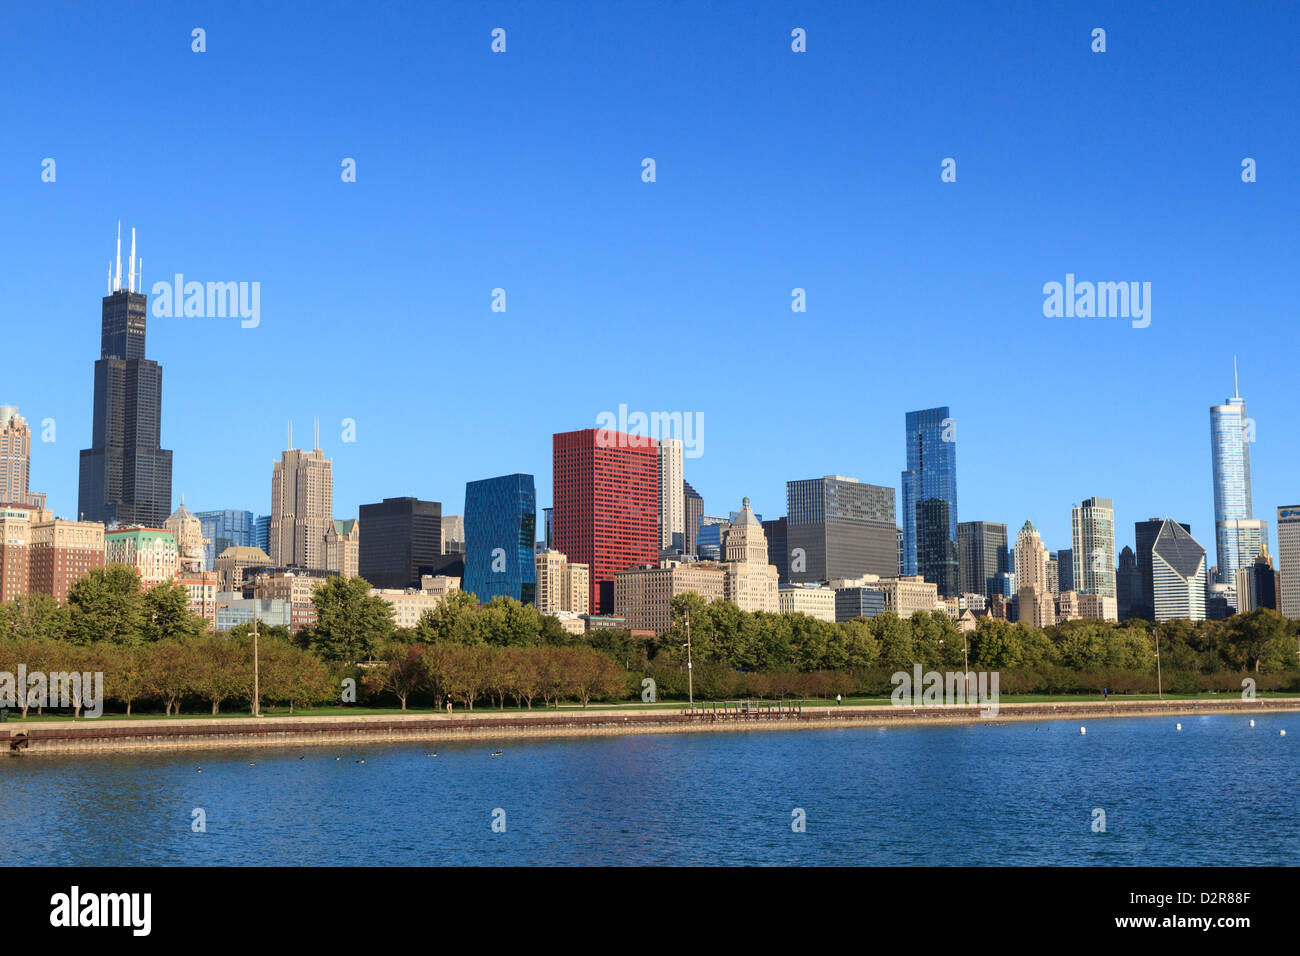 Chicago skyline and Lake Michigan with the Willis Tower, formerly the Sears Tower on the left, Chicago, Illinois, - Stock Image